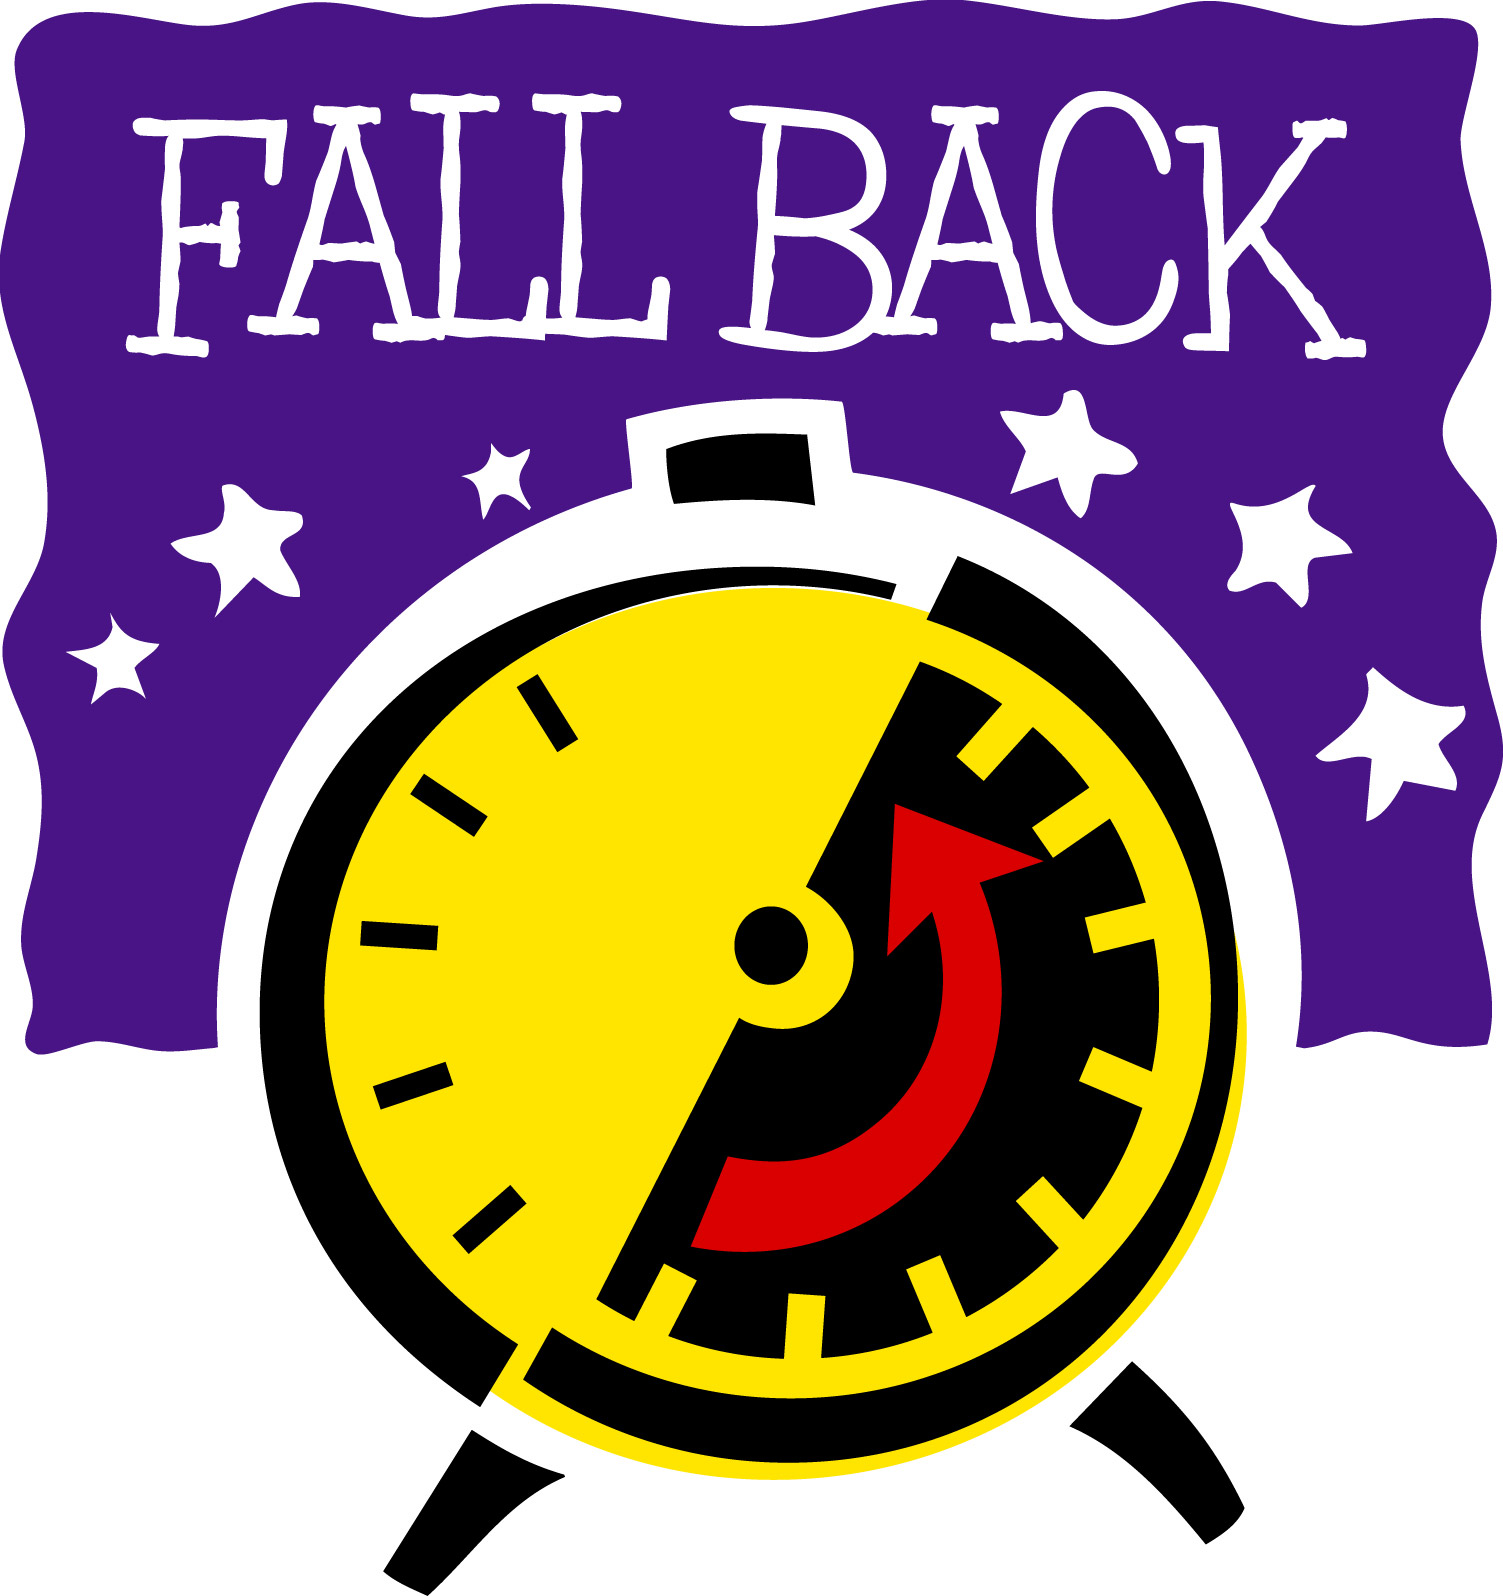 Daylight Savings Time Clipart Cliparts C-Daylight Savings Time Clipart Cliparts Co. 0605b5a8e3aabcec80229b3ff94ab3 .-1